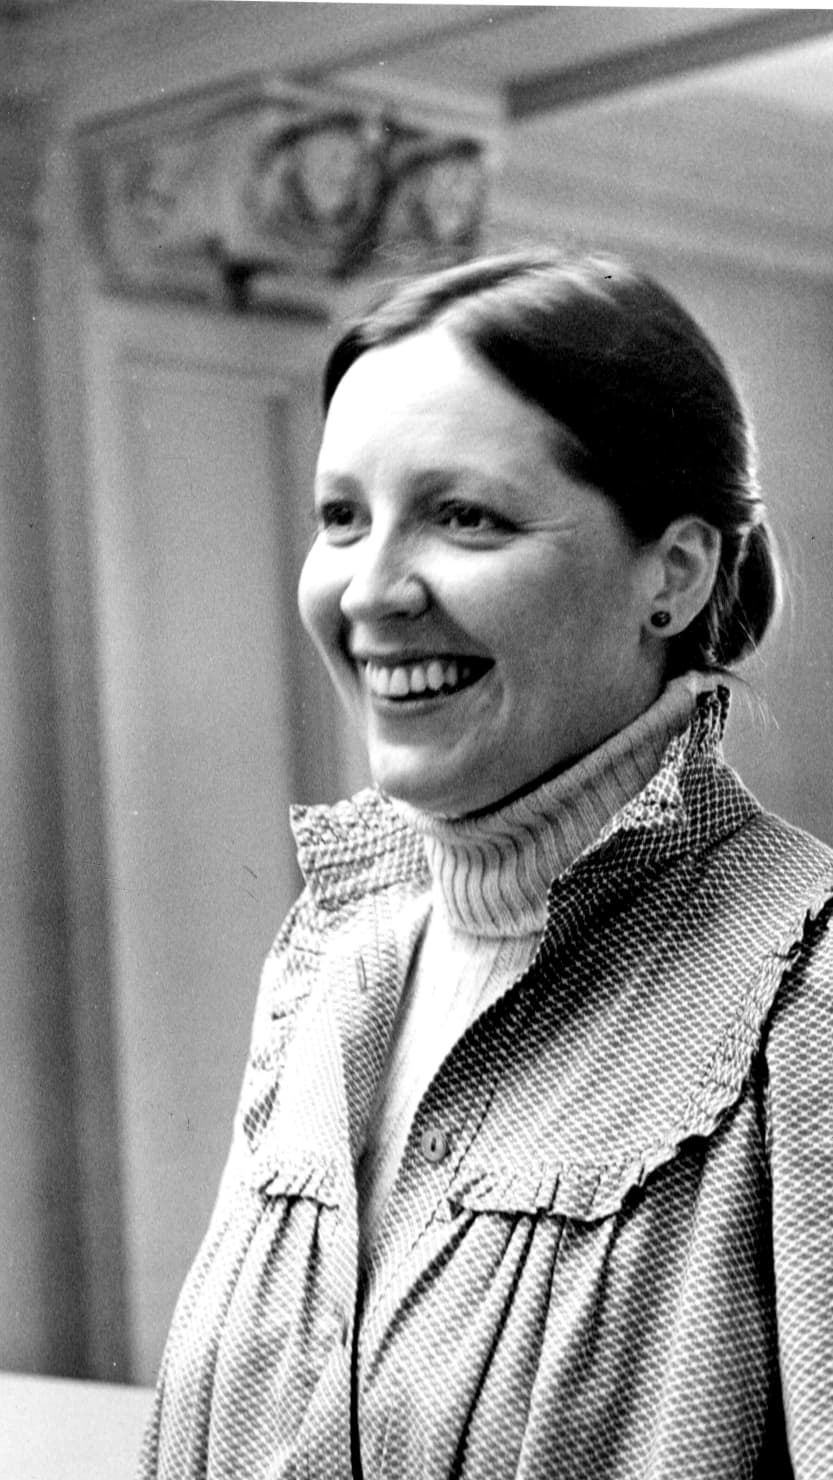 Maureen Attrill, c. 1980. Image courtesy of the Attrill family.